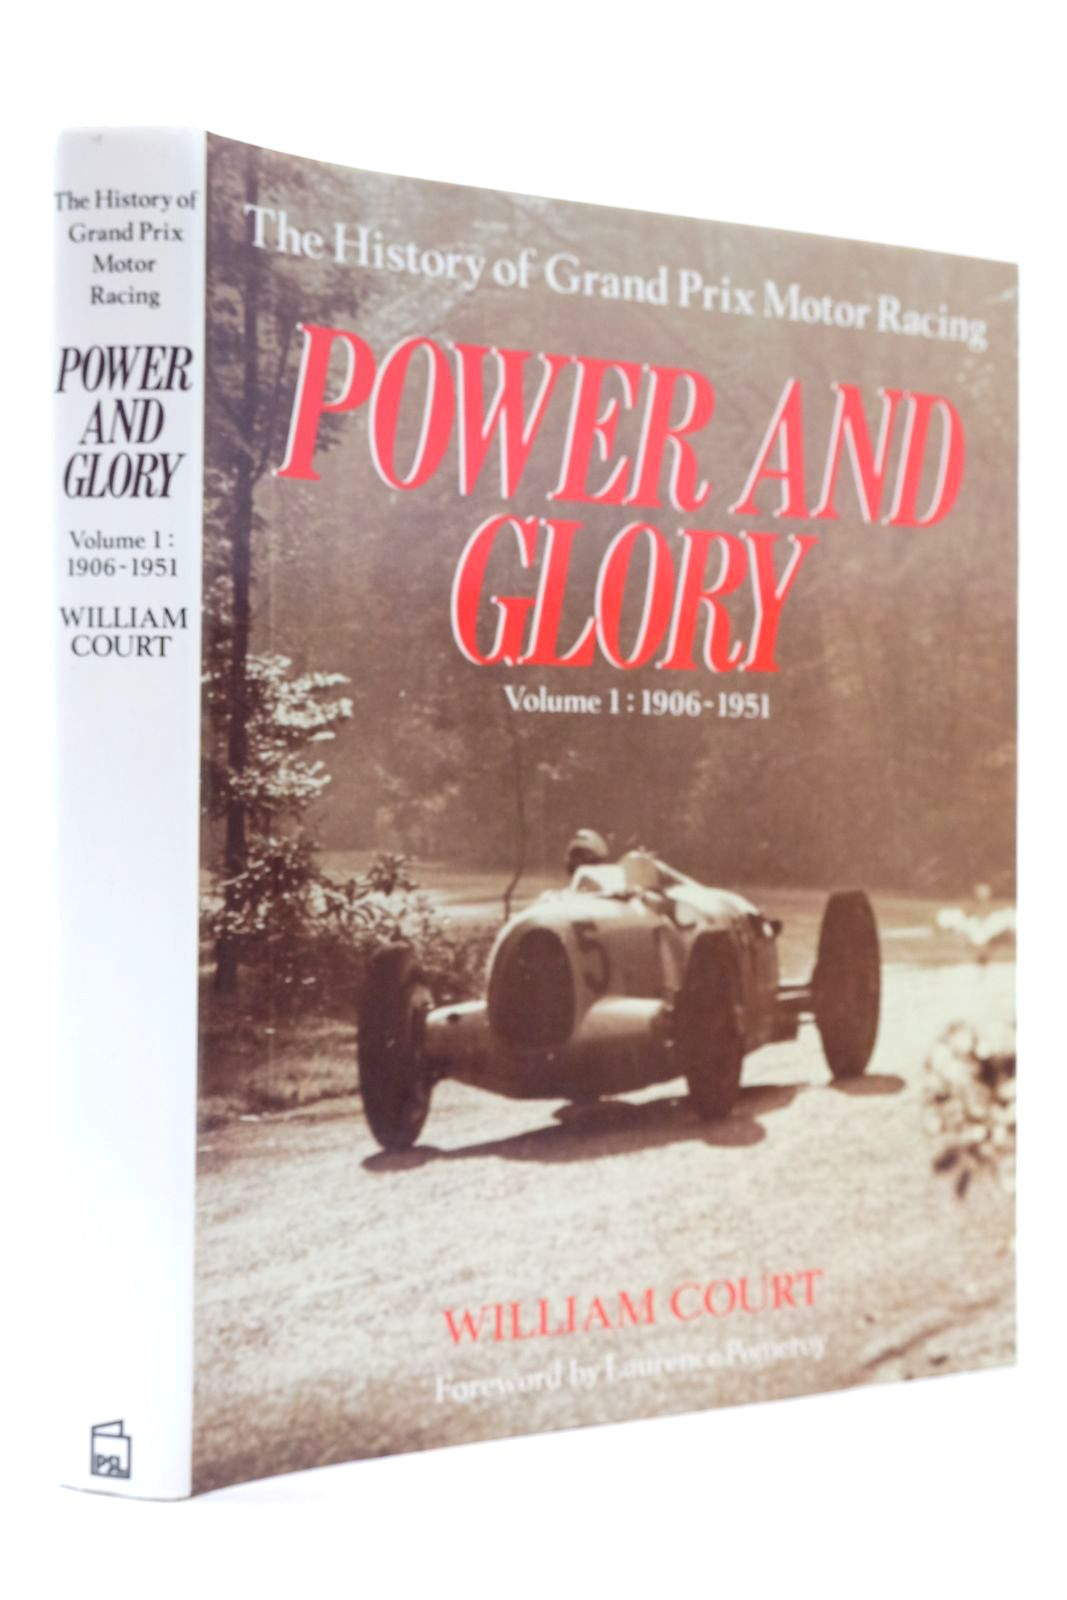 Photo of POWER AND GLORY VOLUME 1 1906-1951- Stock Number: 2133102